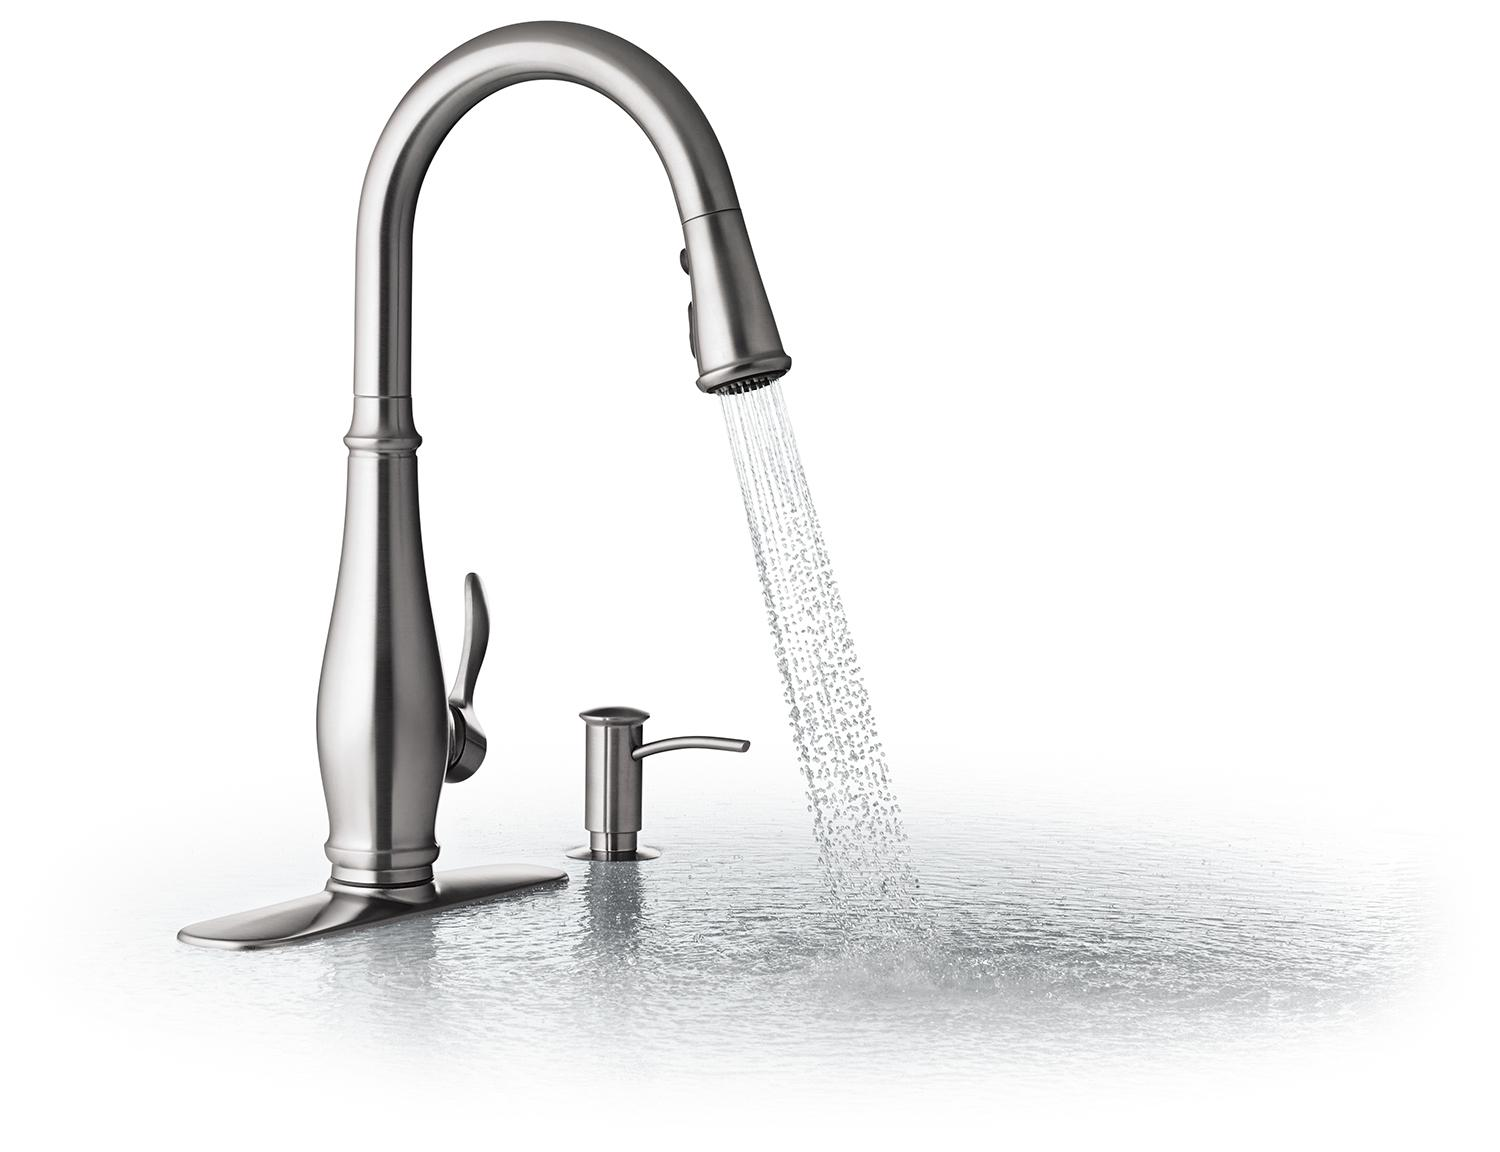 kitchen faucet designed with a graceful elegance the cruette faucet ...